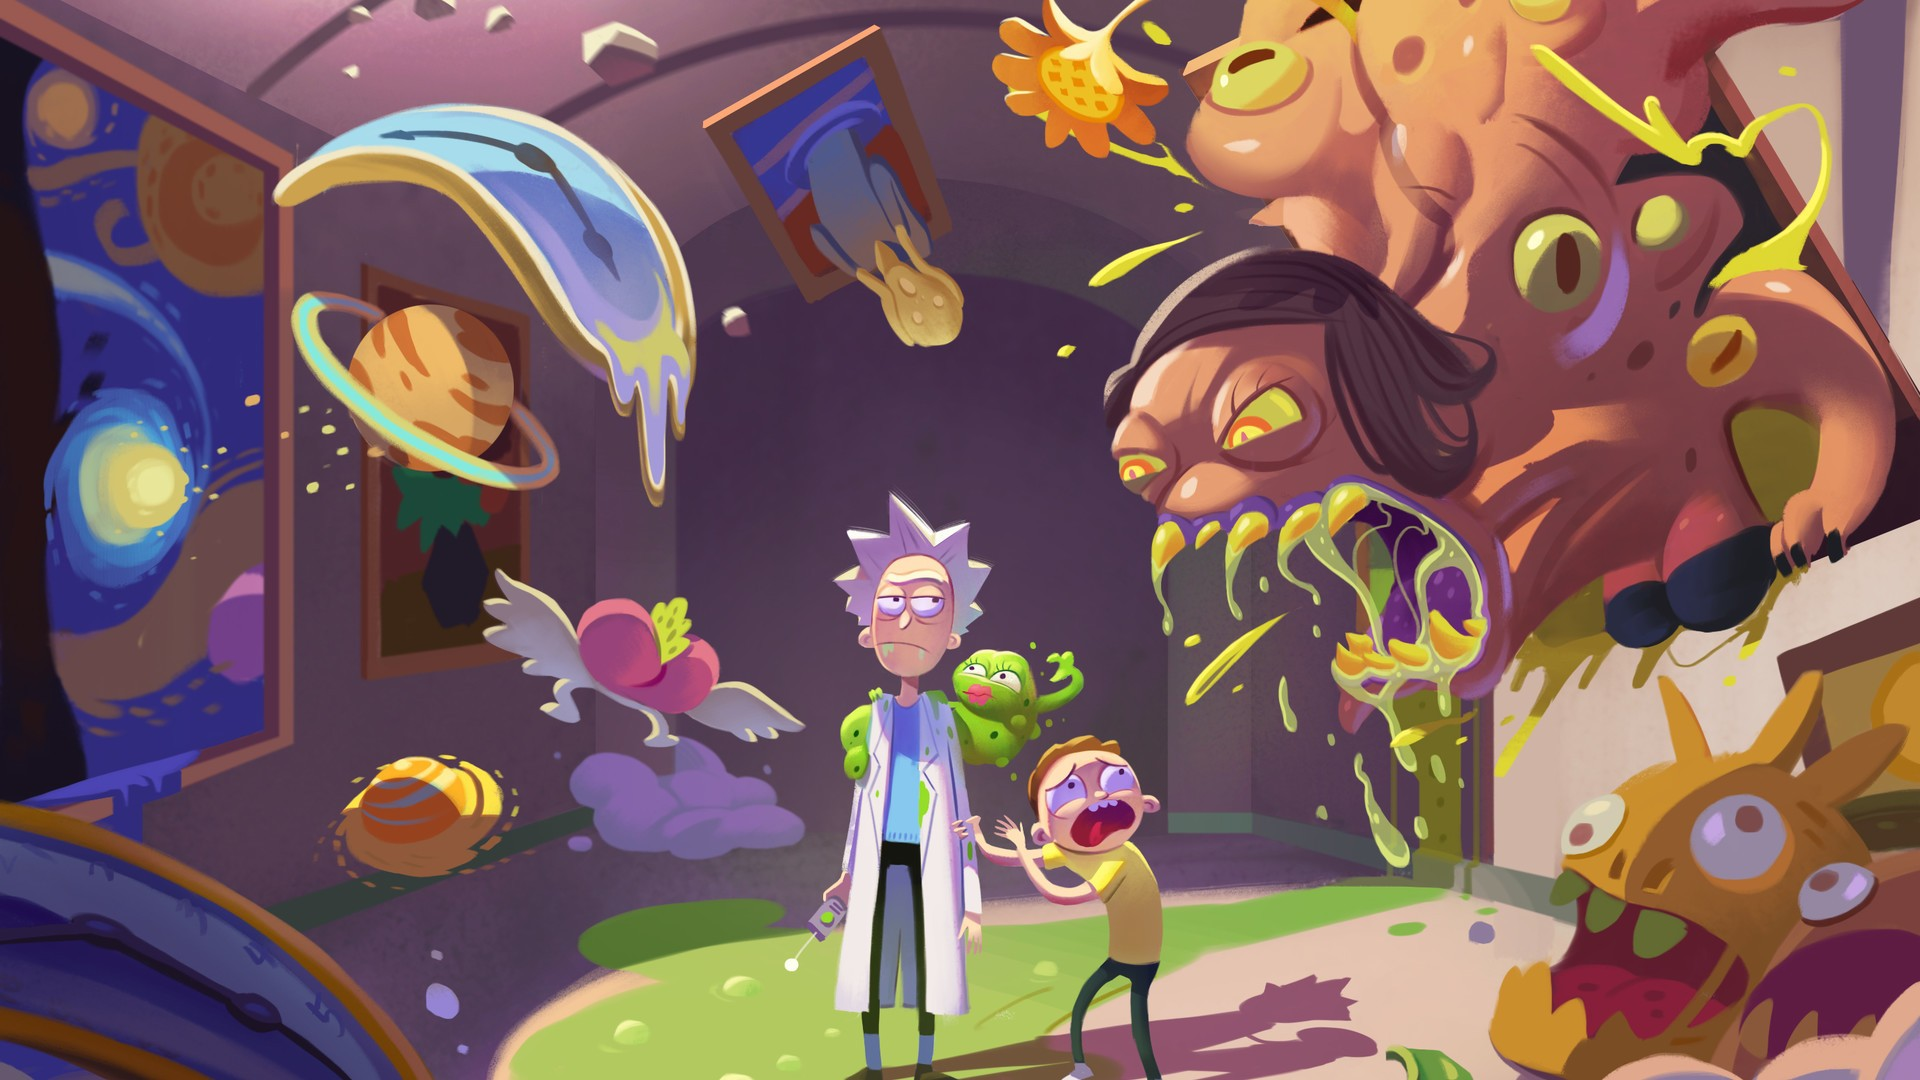 Rick And Morty Desktop Wallpapers With High Resolution Rick Y Morty 4k 1920x1080 Download Hd Wallpaper Wallpapertip